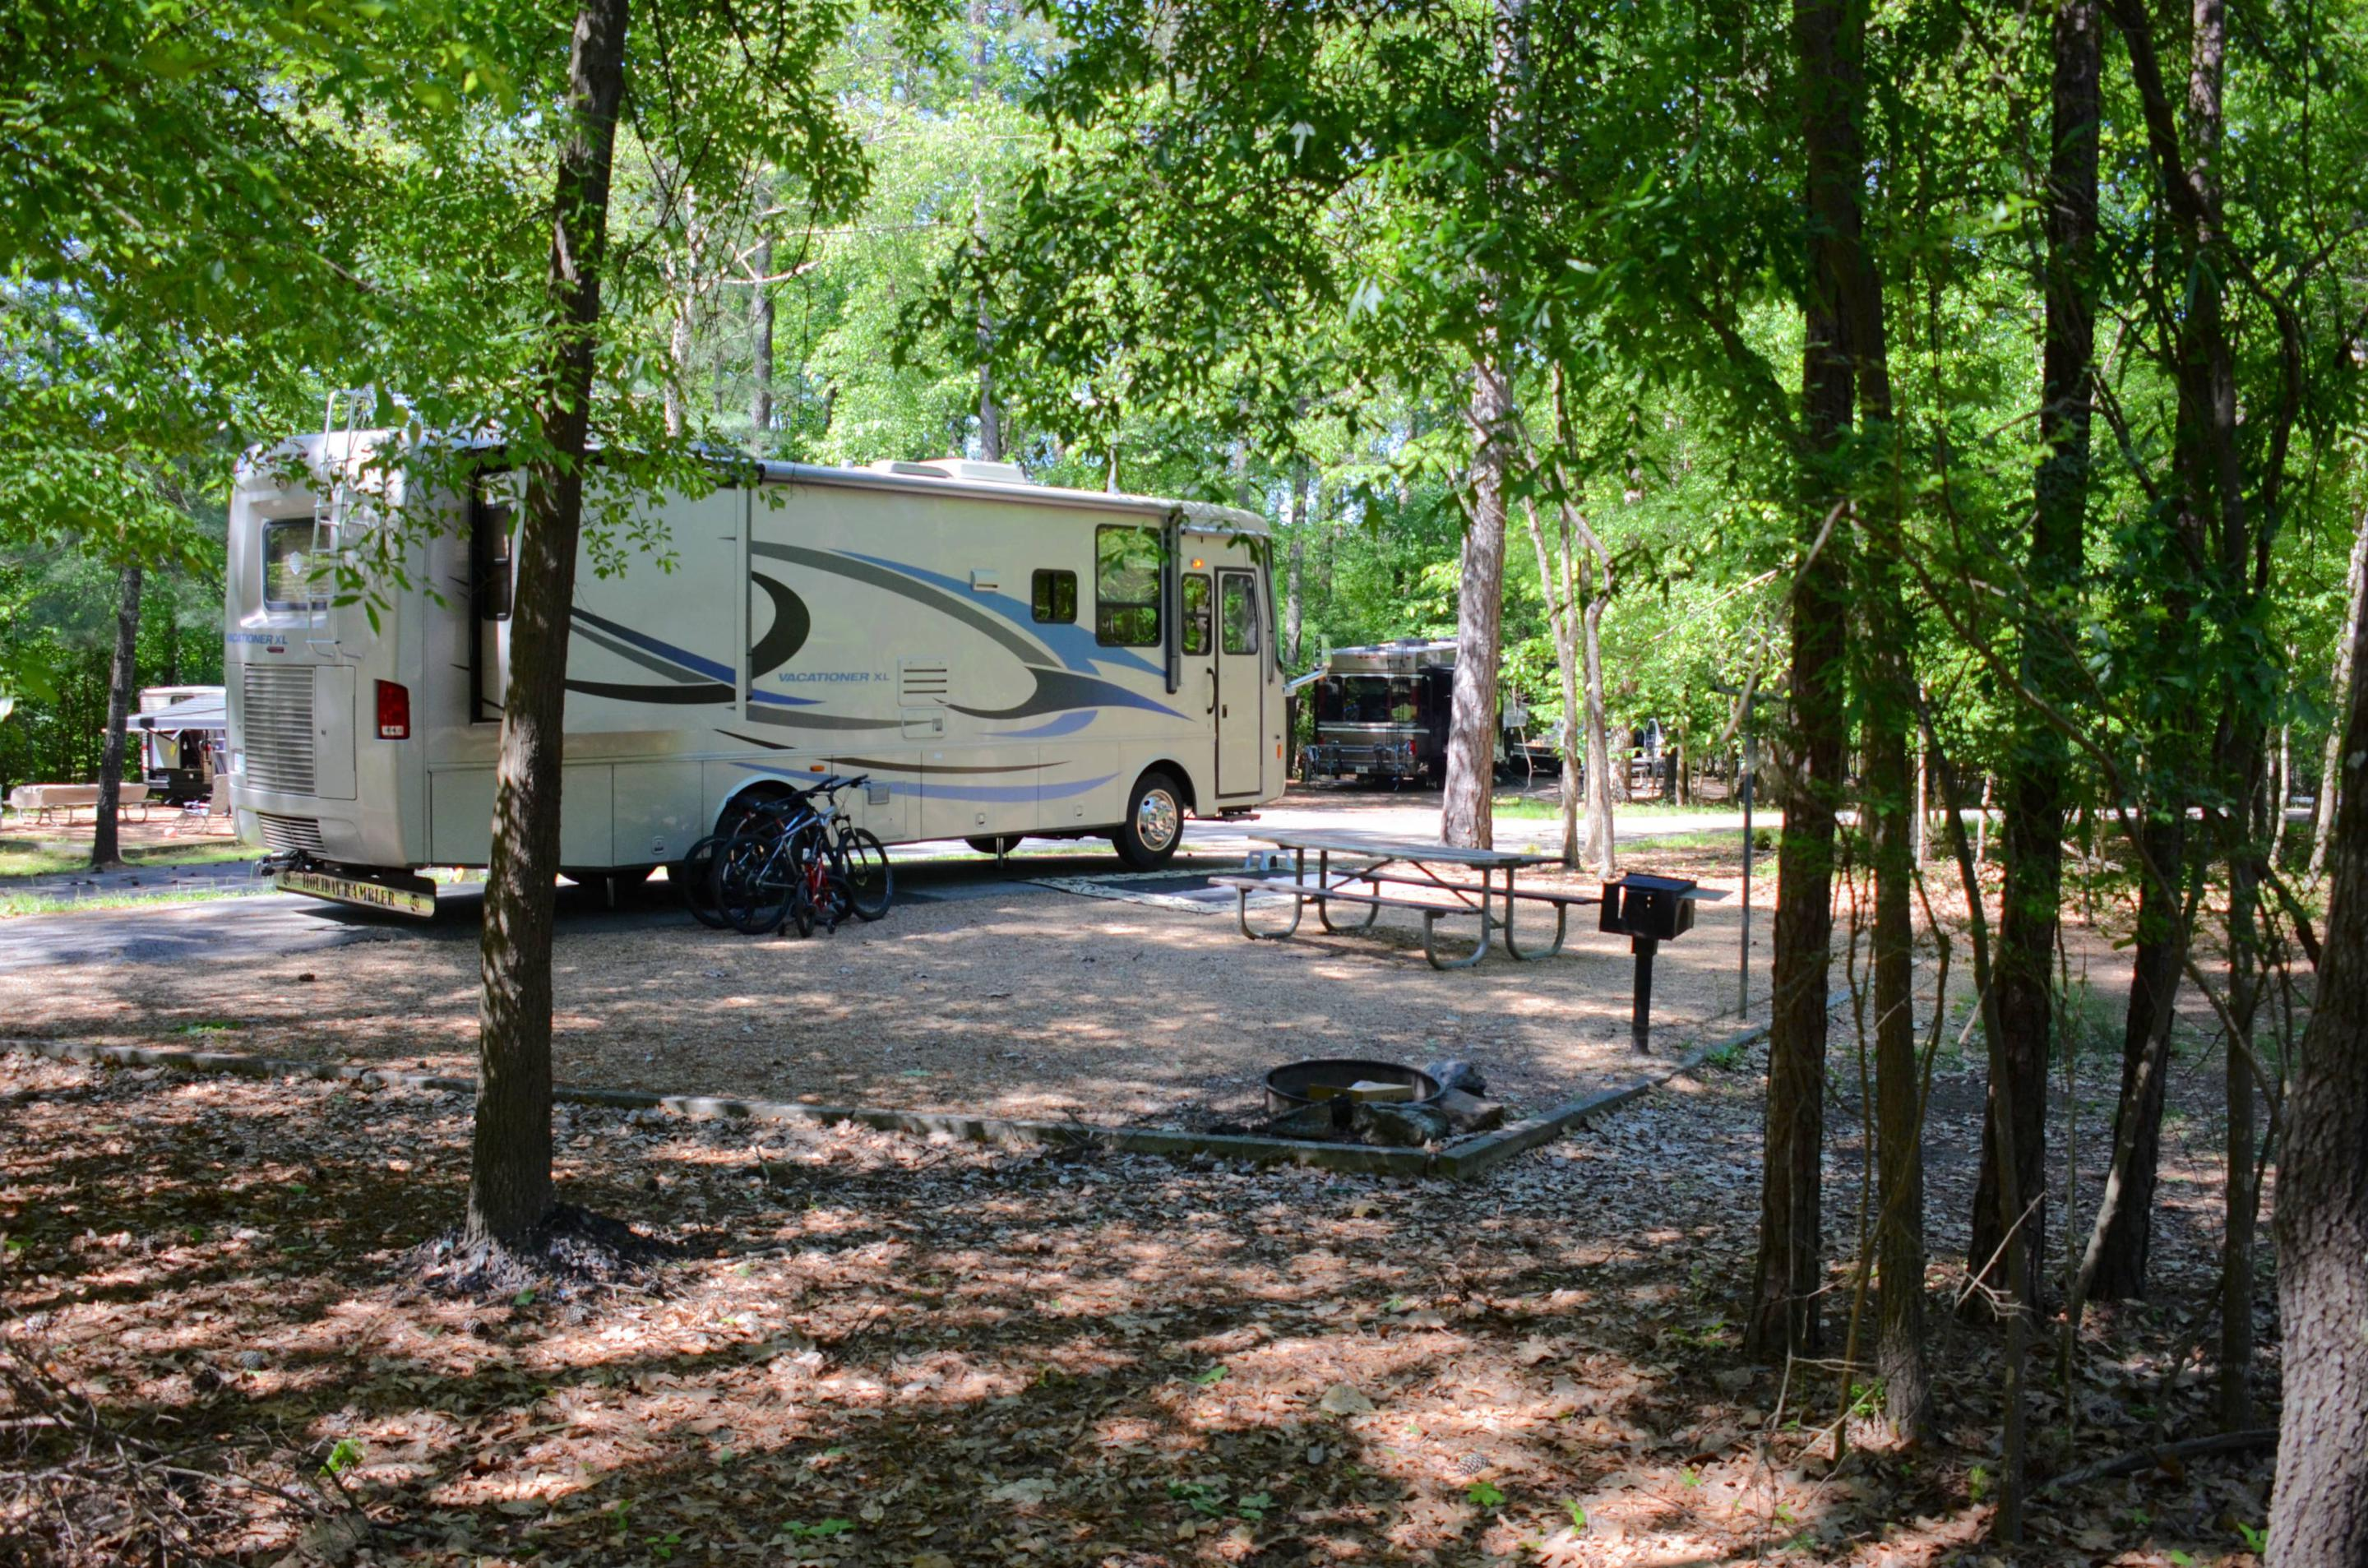 Campsite view, amenities, awning-side clearance.McKinney Campground, campsite 74.